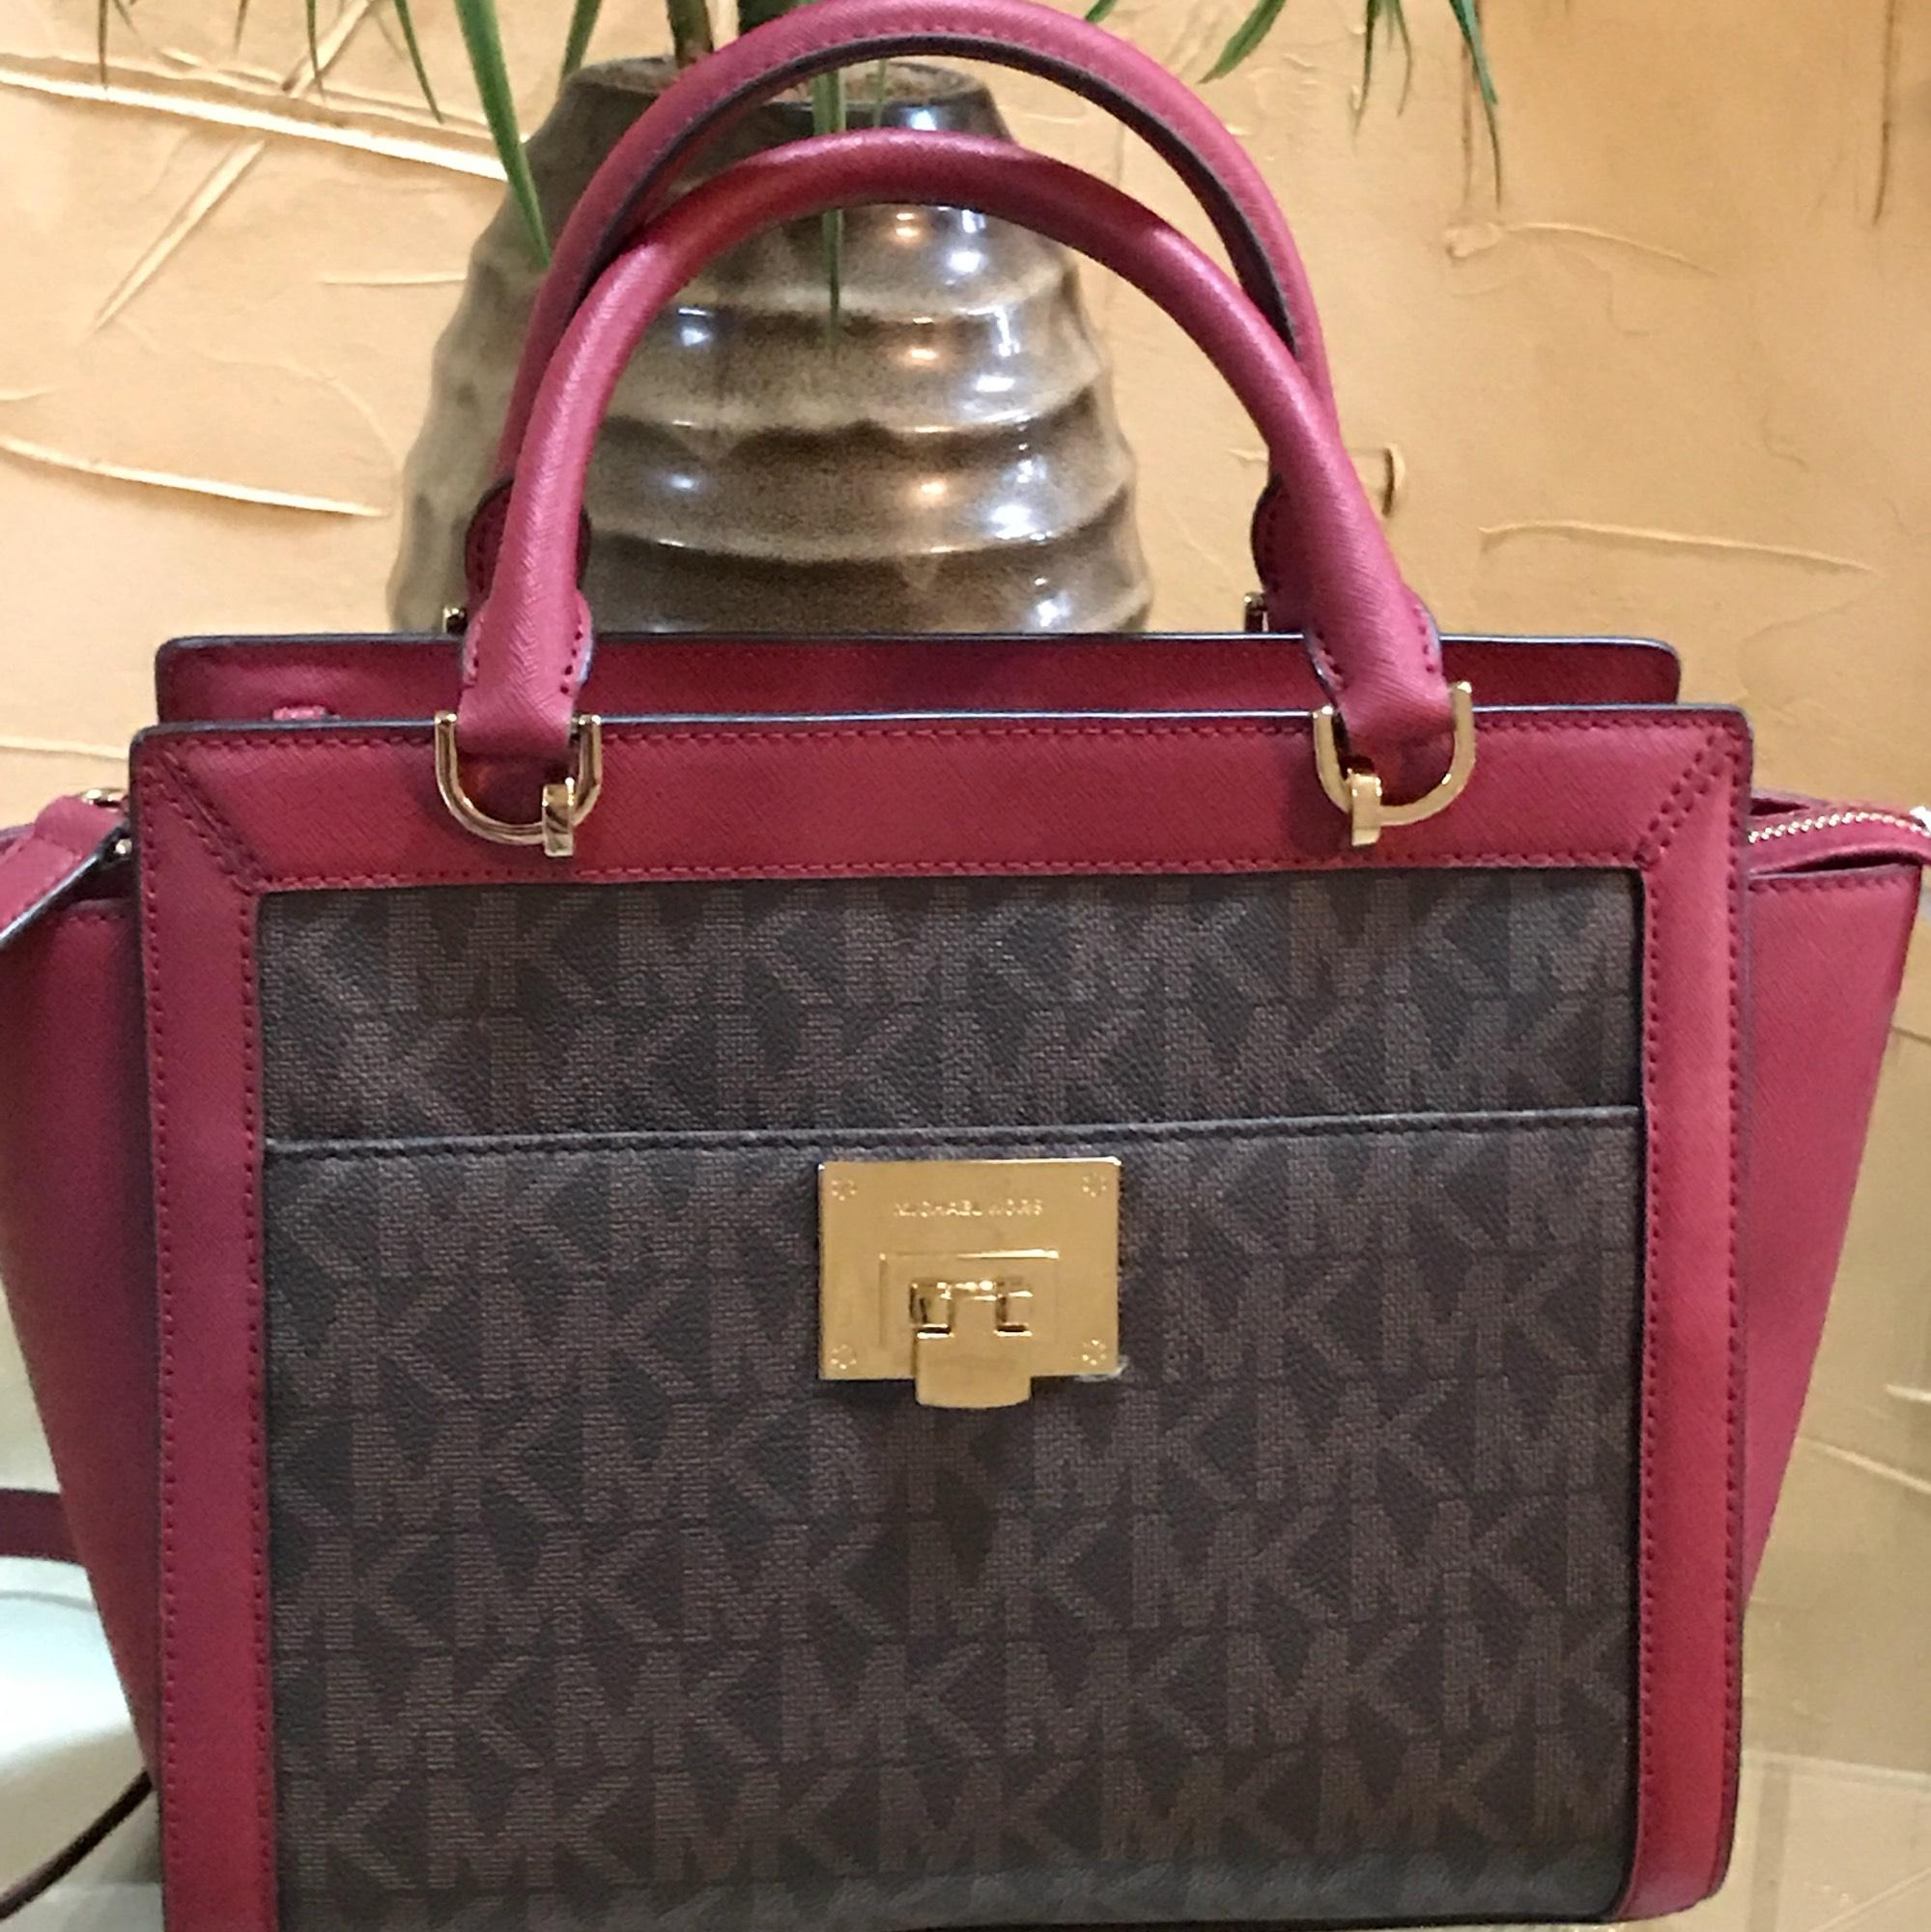 994845f7a4ca ... shop michael kors tina large fulton wallet set brown cherry pvc with saffiano  leather satchel tradesy